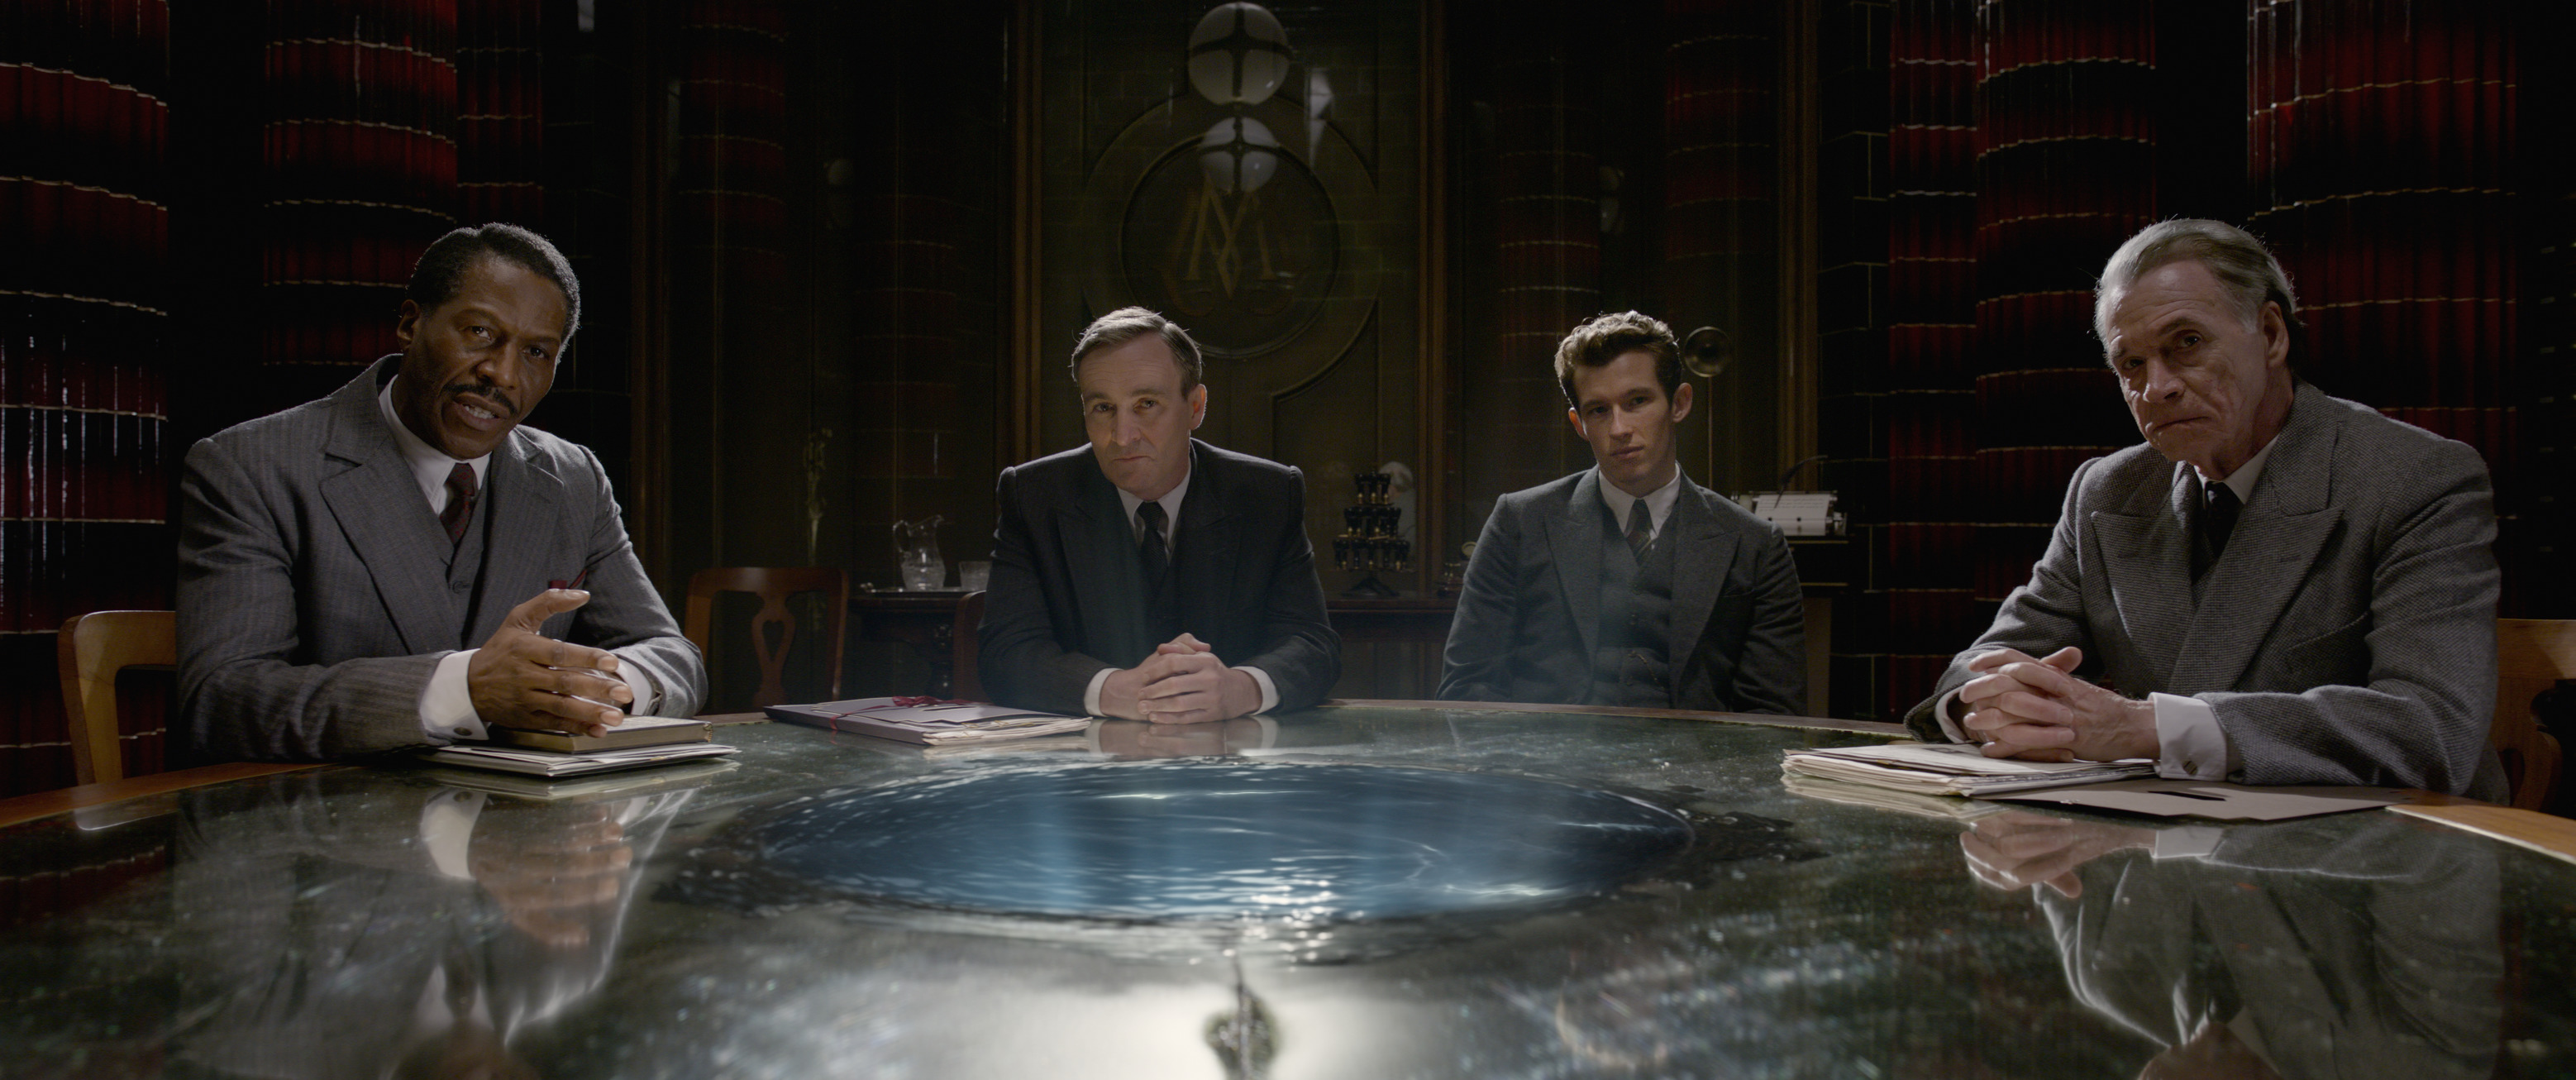 """Fantastic Beasts: The Crimes of Grindelwald"": Arnold Guzman (Cornell S. John), Torquil Travers (Derek Riddell), Theseus Scamander (Callum Turner), and Spielman (Wolf Roth)"